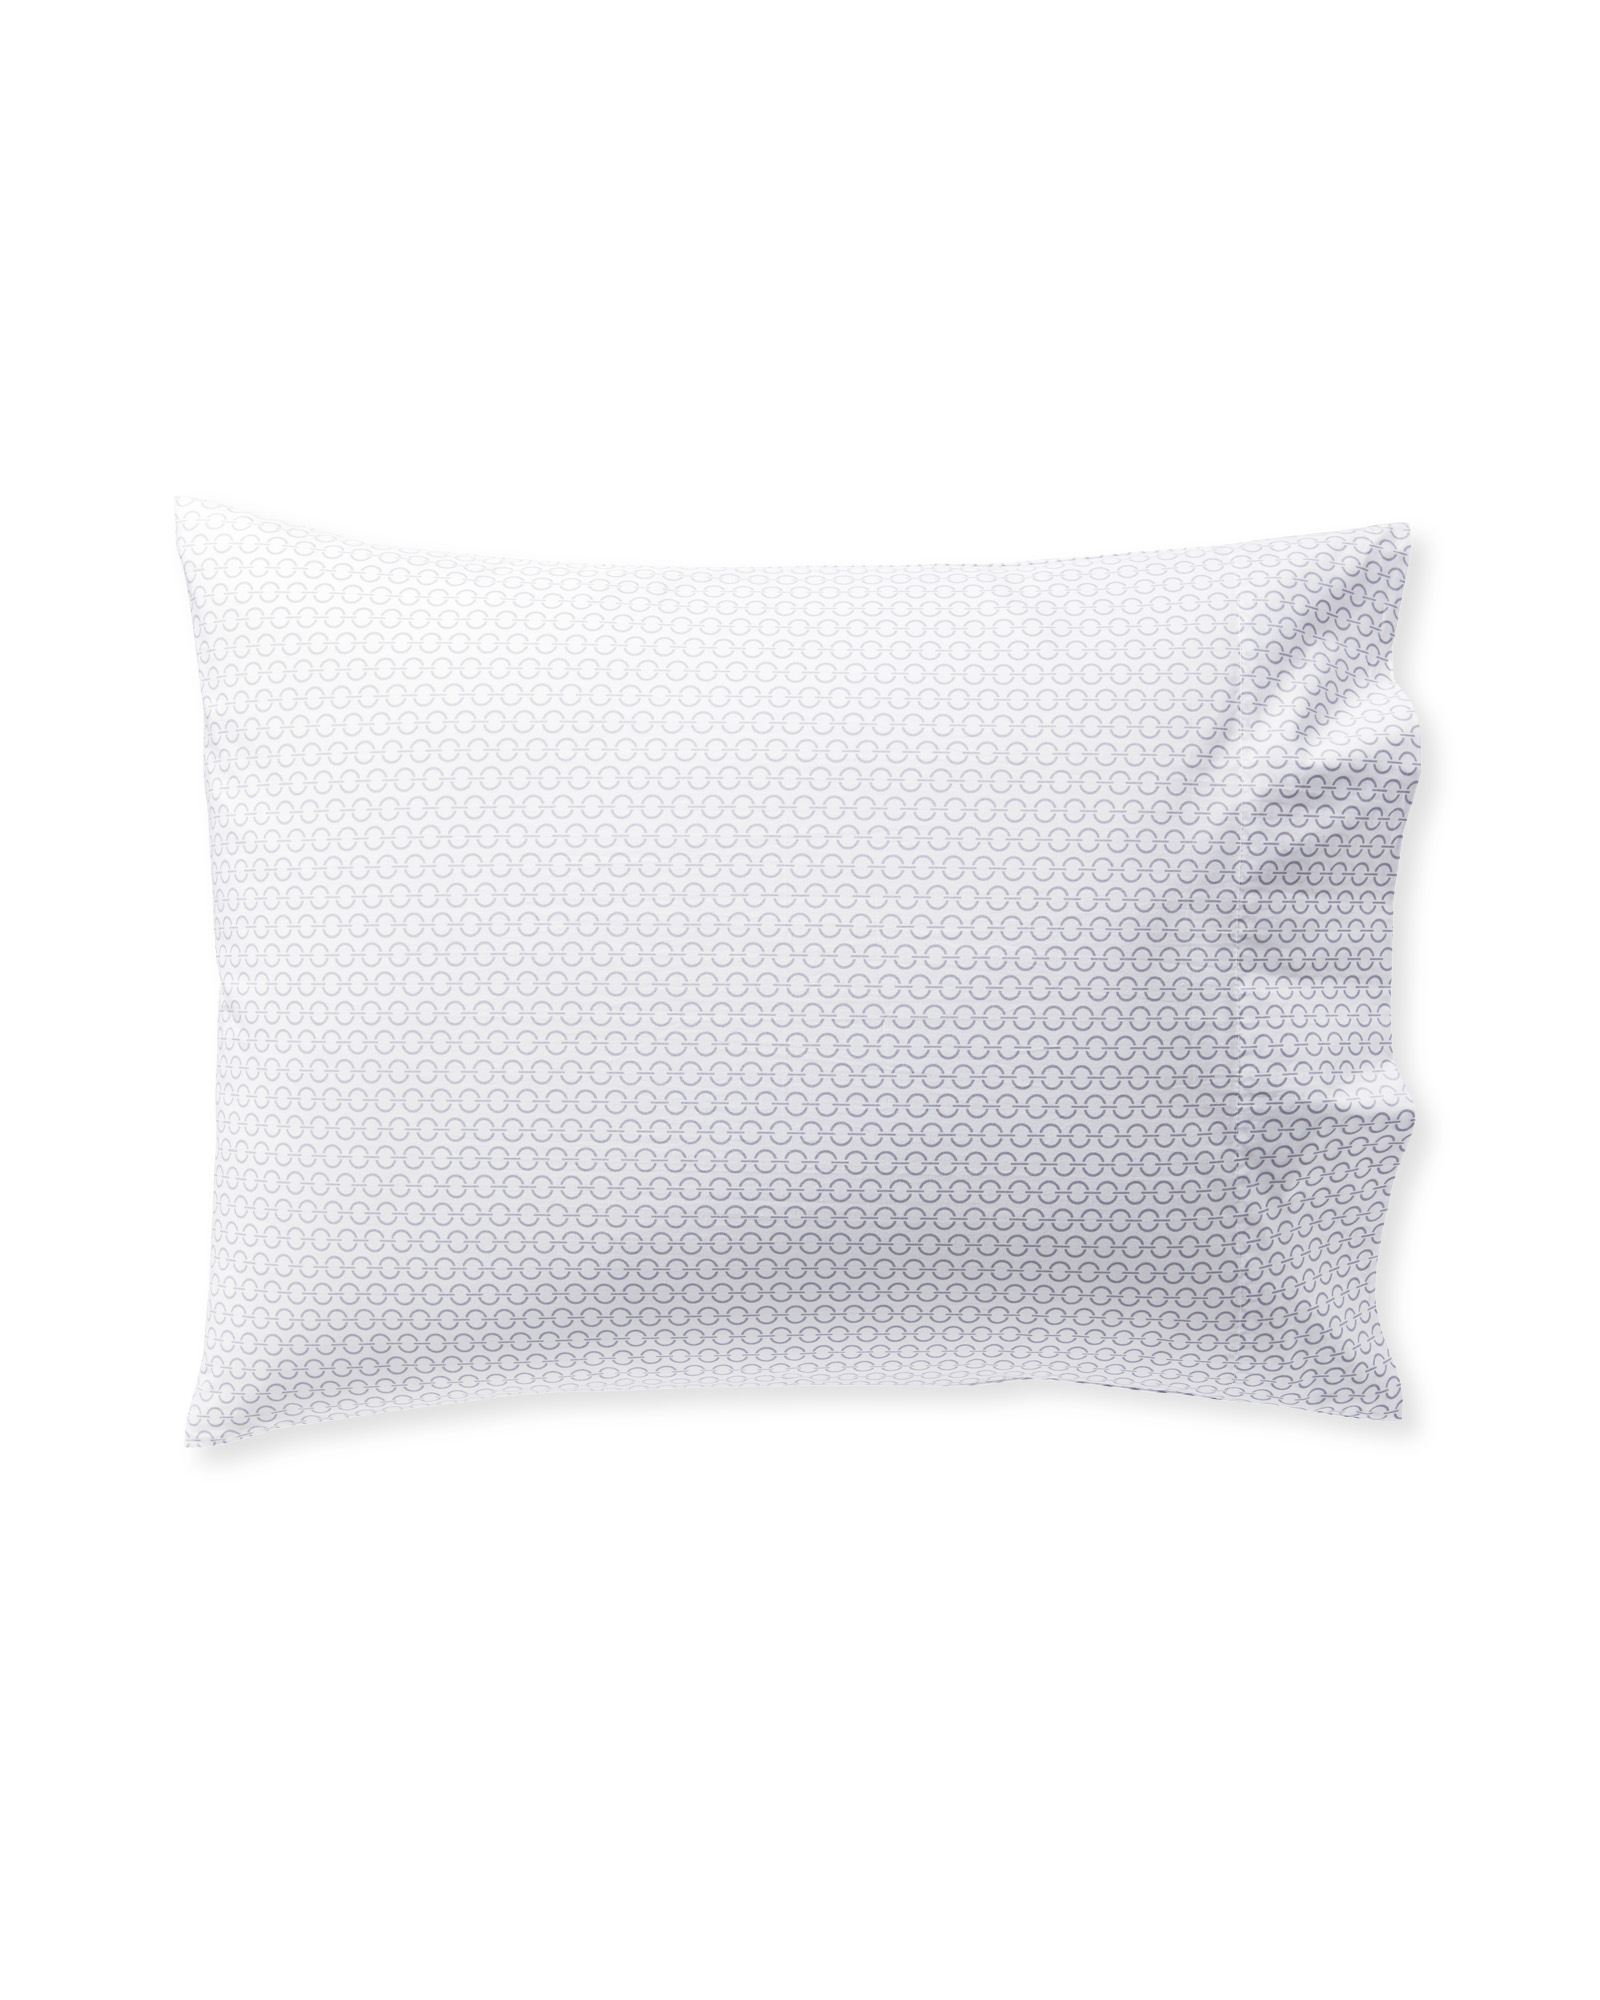 Classic Ring Pillowcases (Set of 2), Smoke